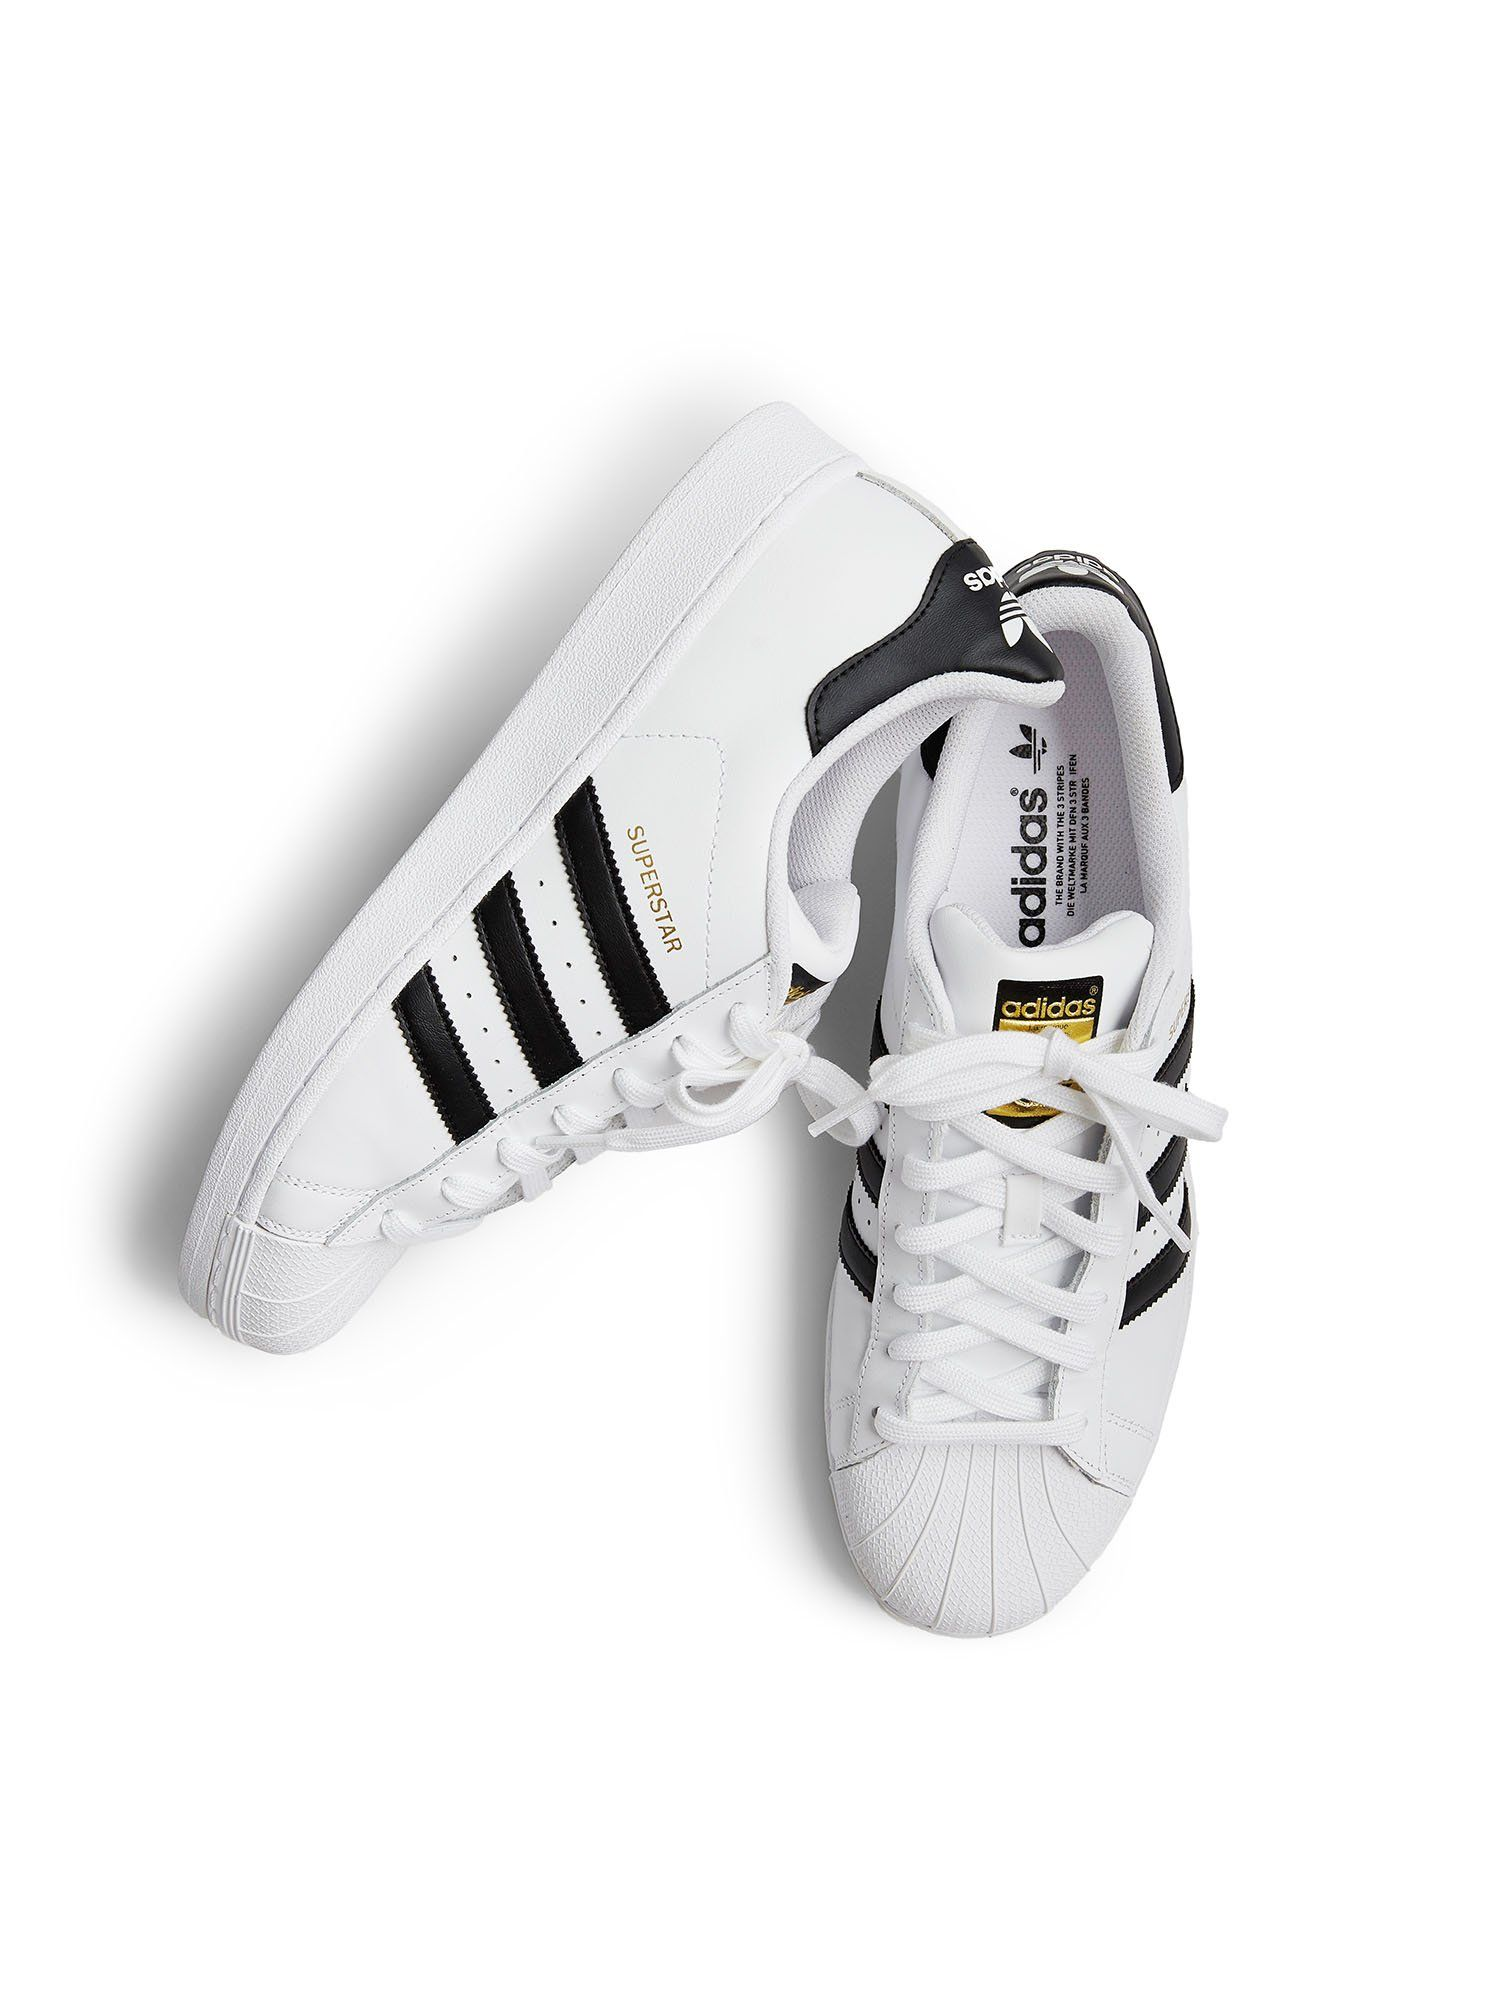 15 Key Style Upgrades Every Man Should Make This Fall Sneakers Men Fashion Adidas Shoes Mens Adidas White Sneakers